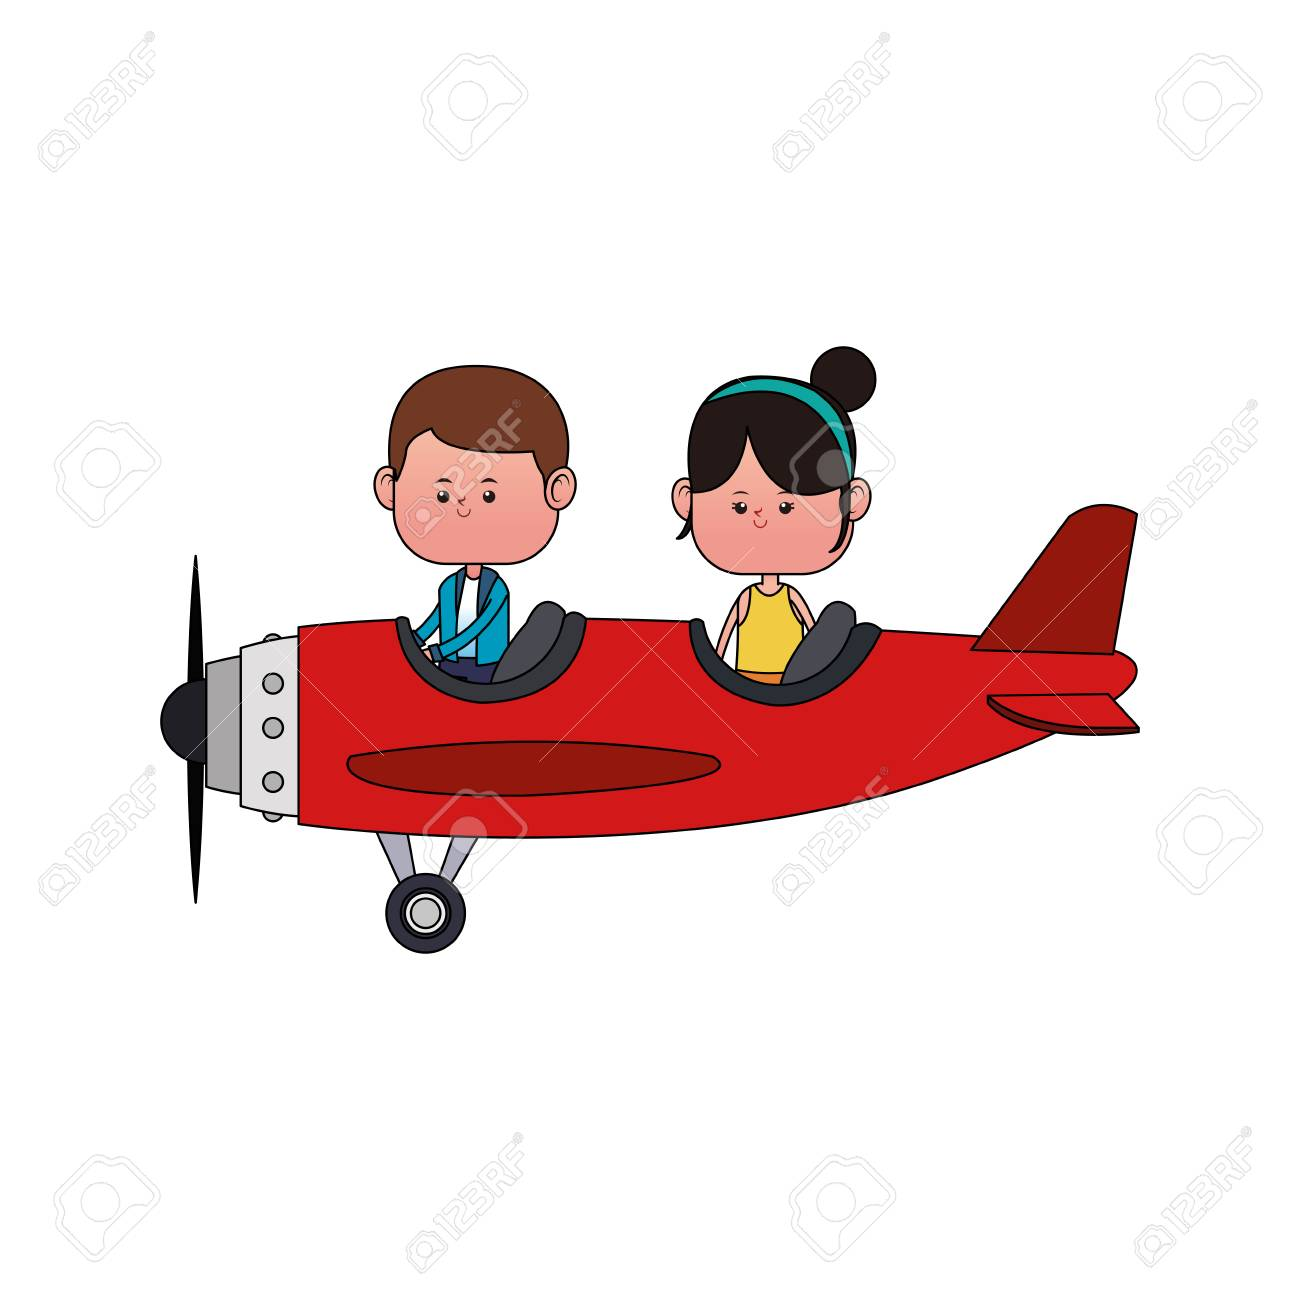 Cute Kids Flying An Airplane Cartoon Vector Illustration Graphic